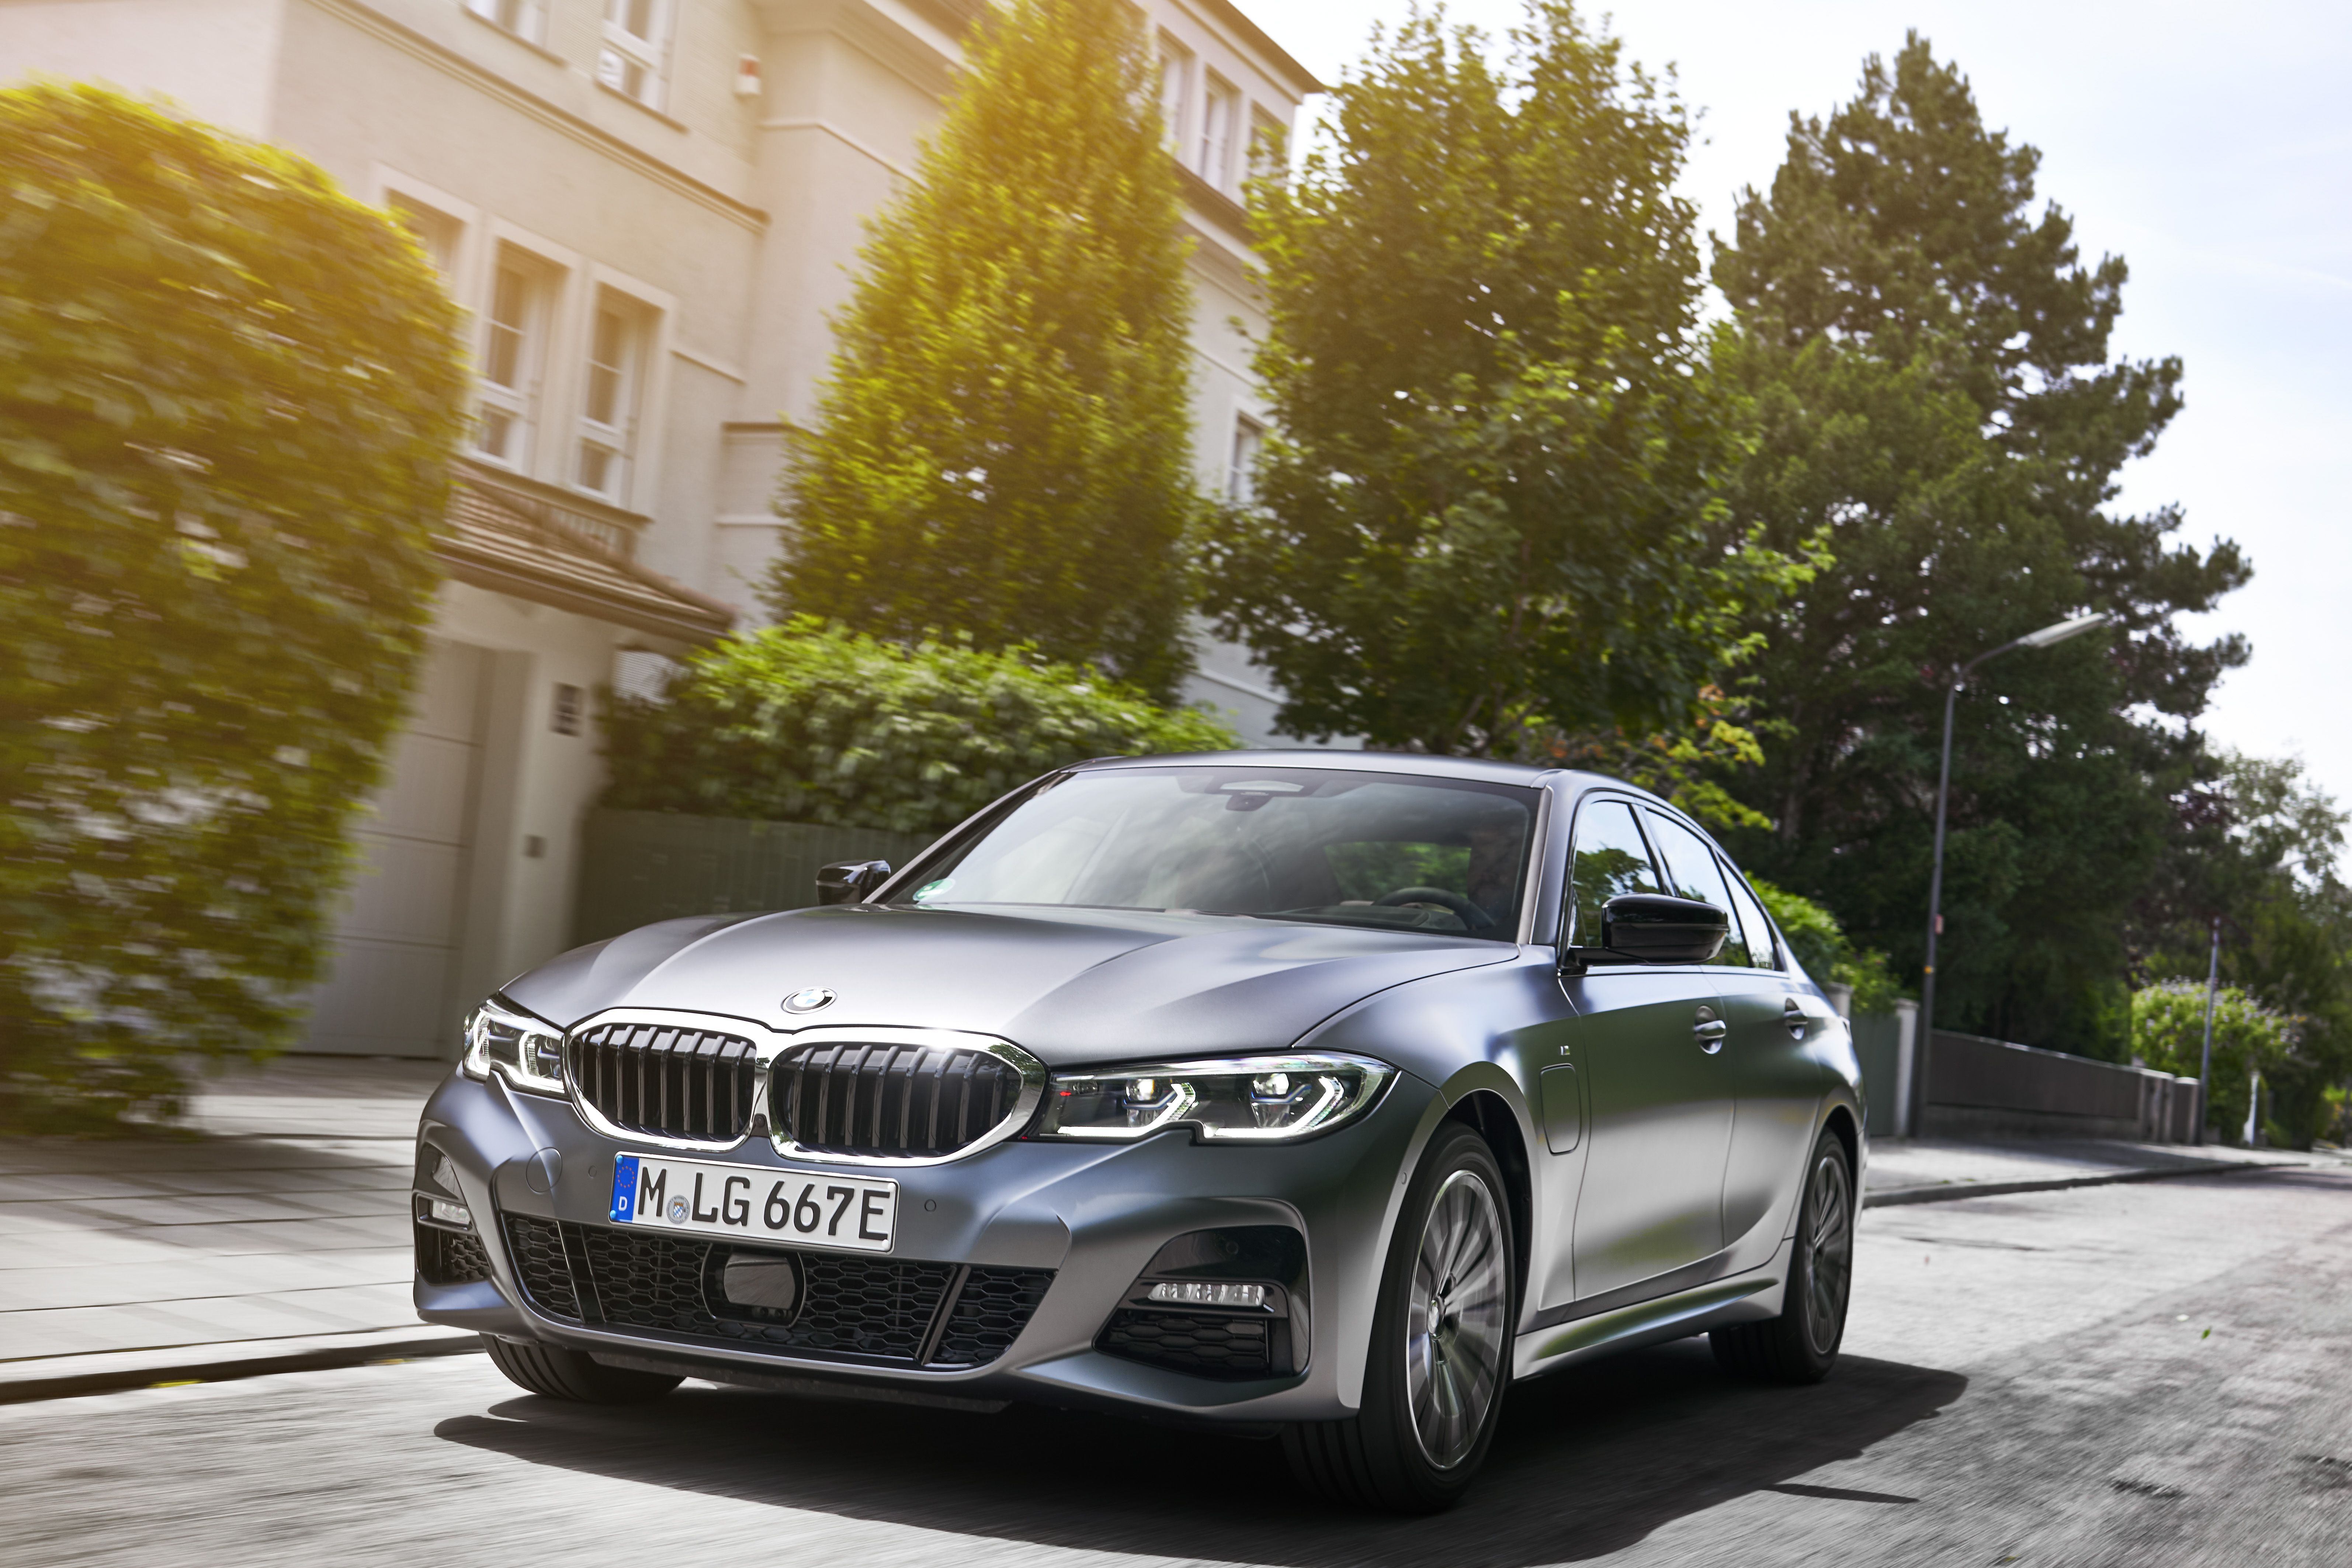 Pin By Nick Shubin On Bmw In 2020 With Images Bmw New Bmw Sedan